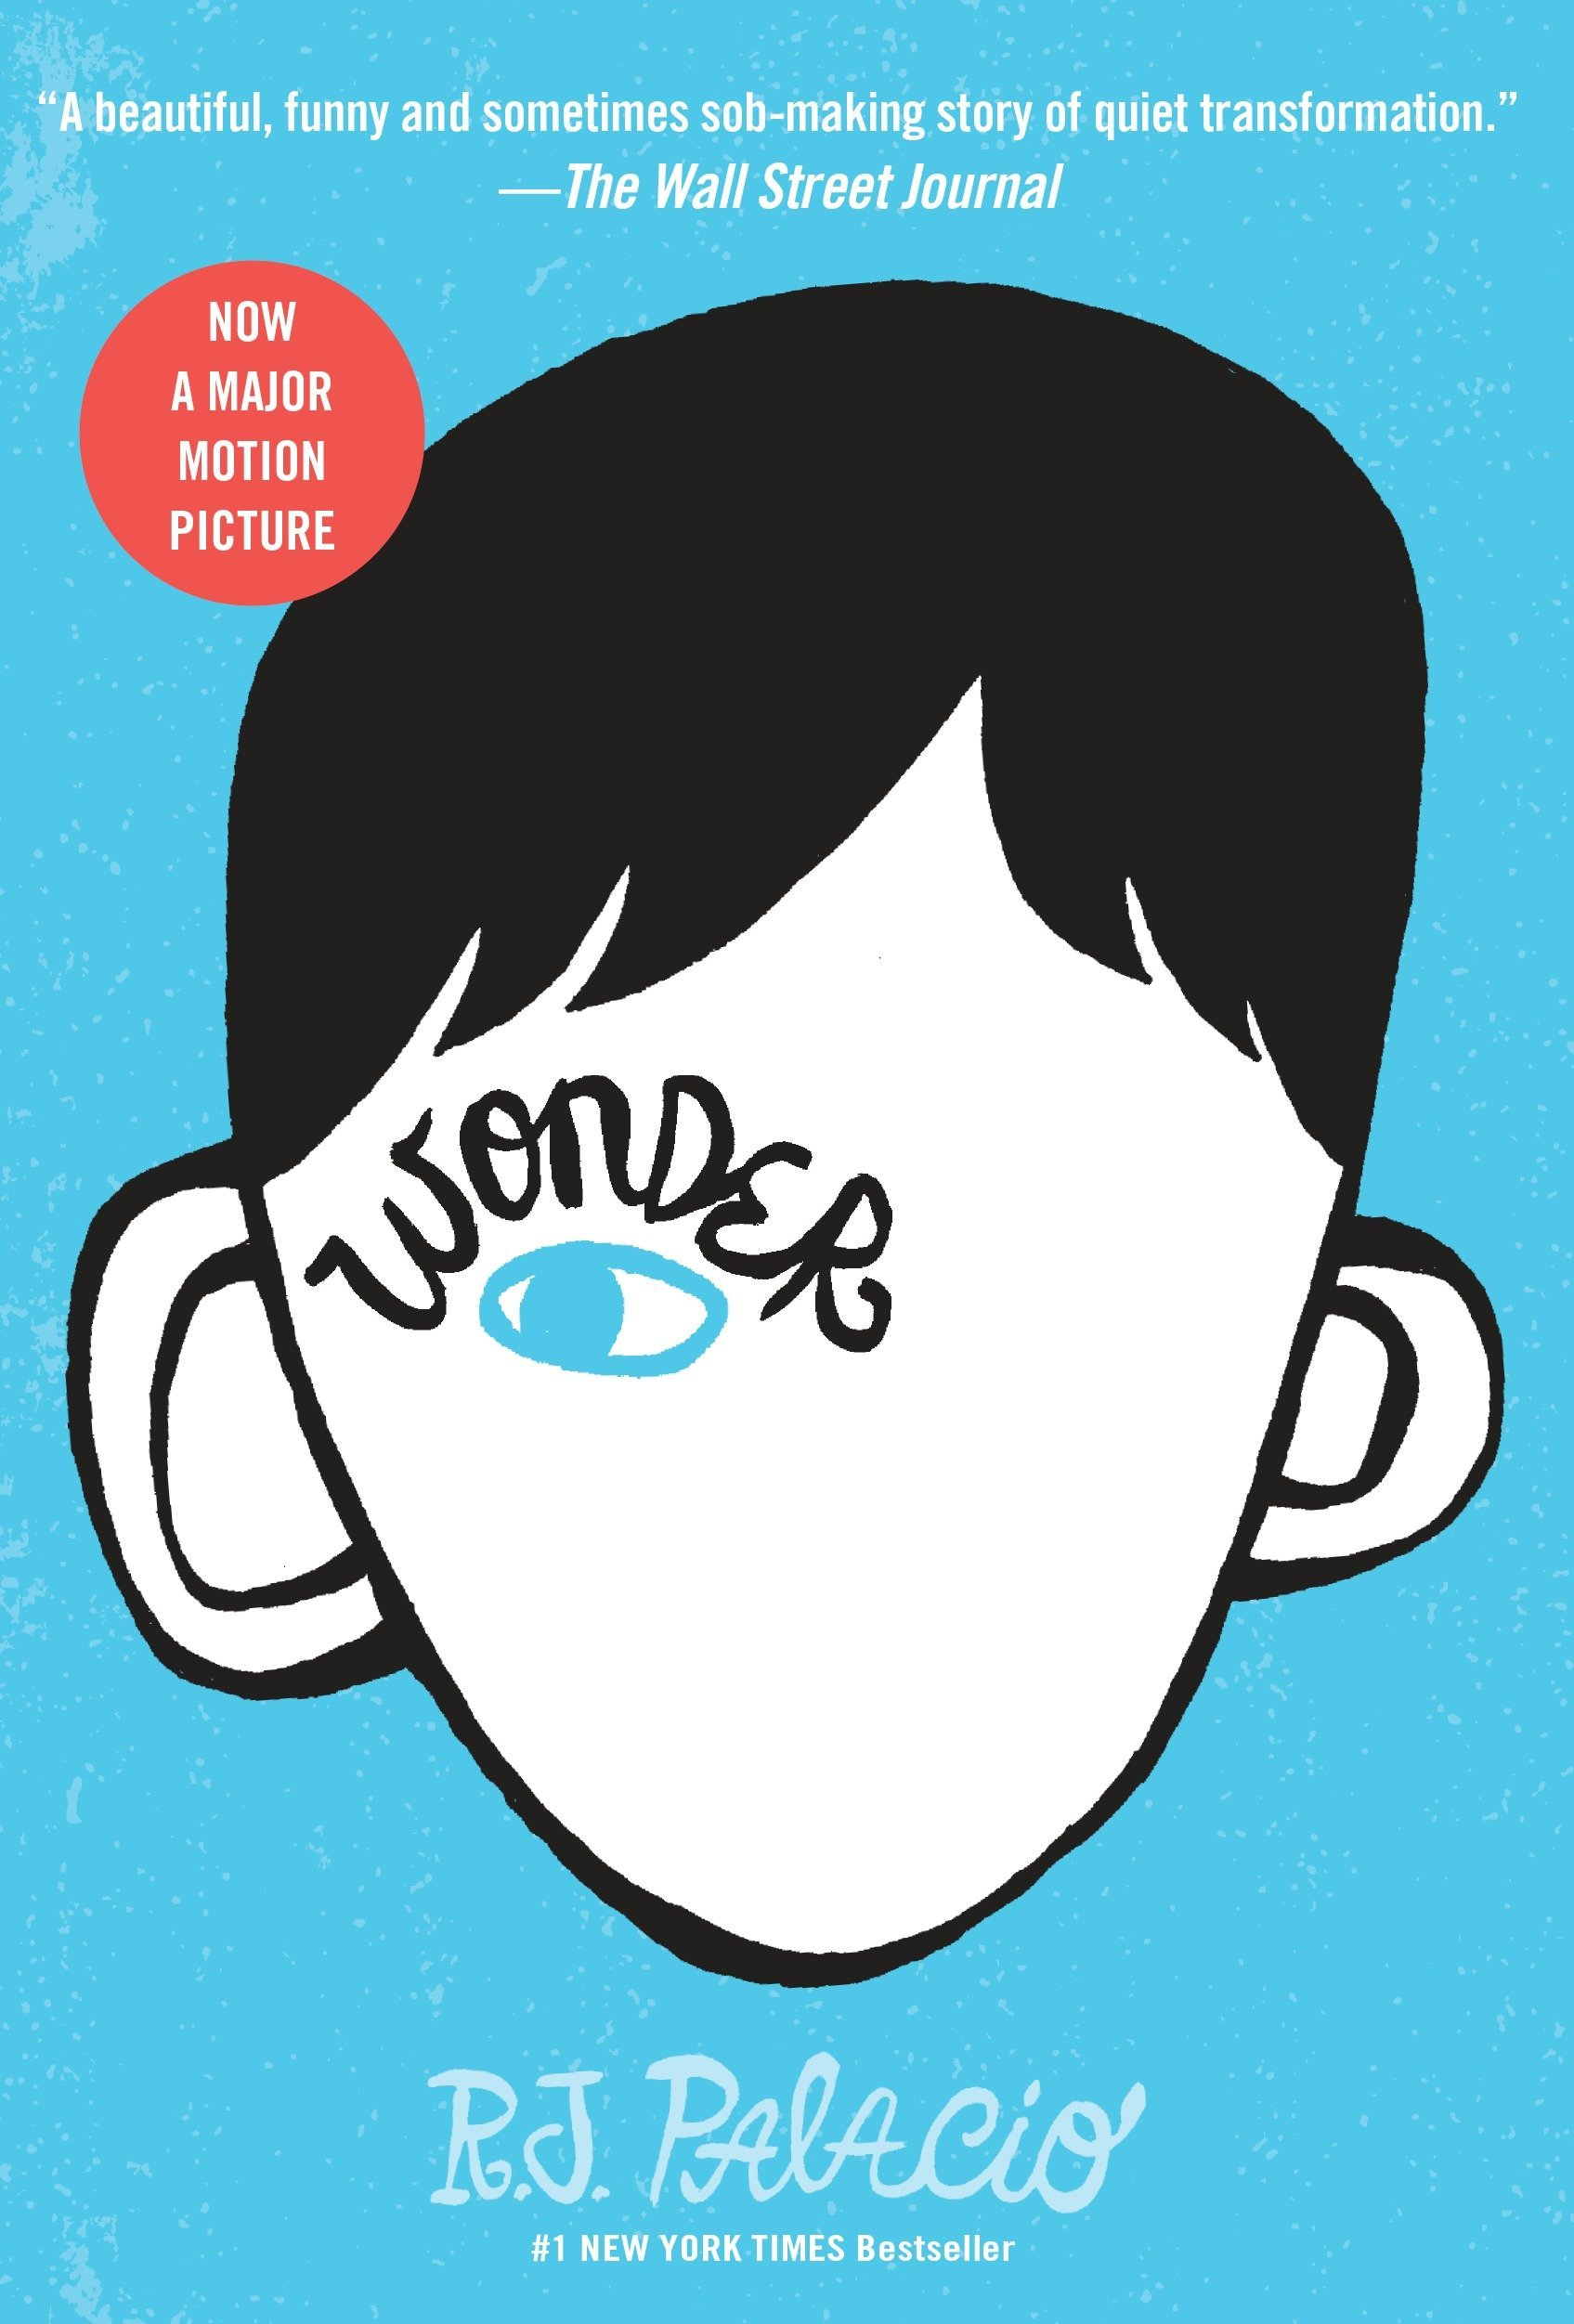 Wonder Amazon De R J Palacio Fremdsprachige Bucher